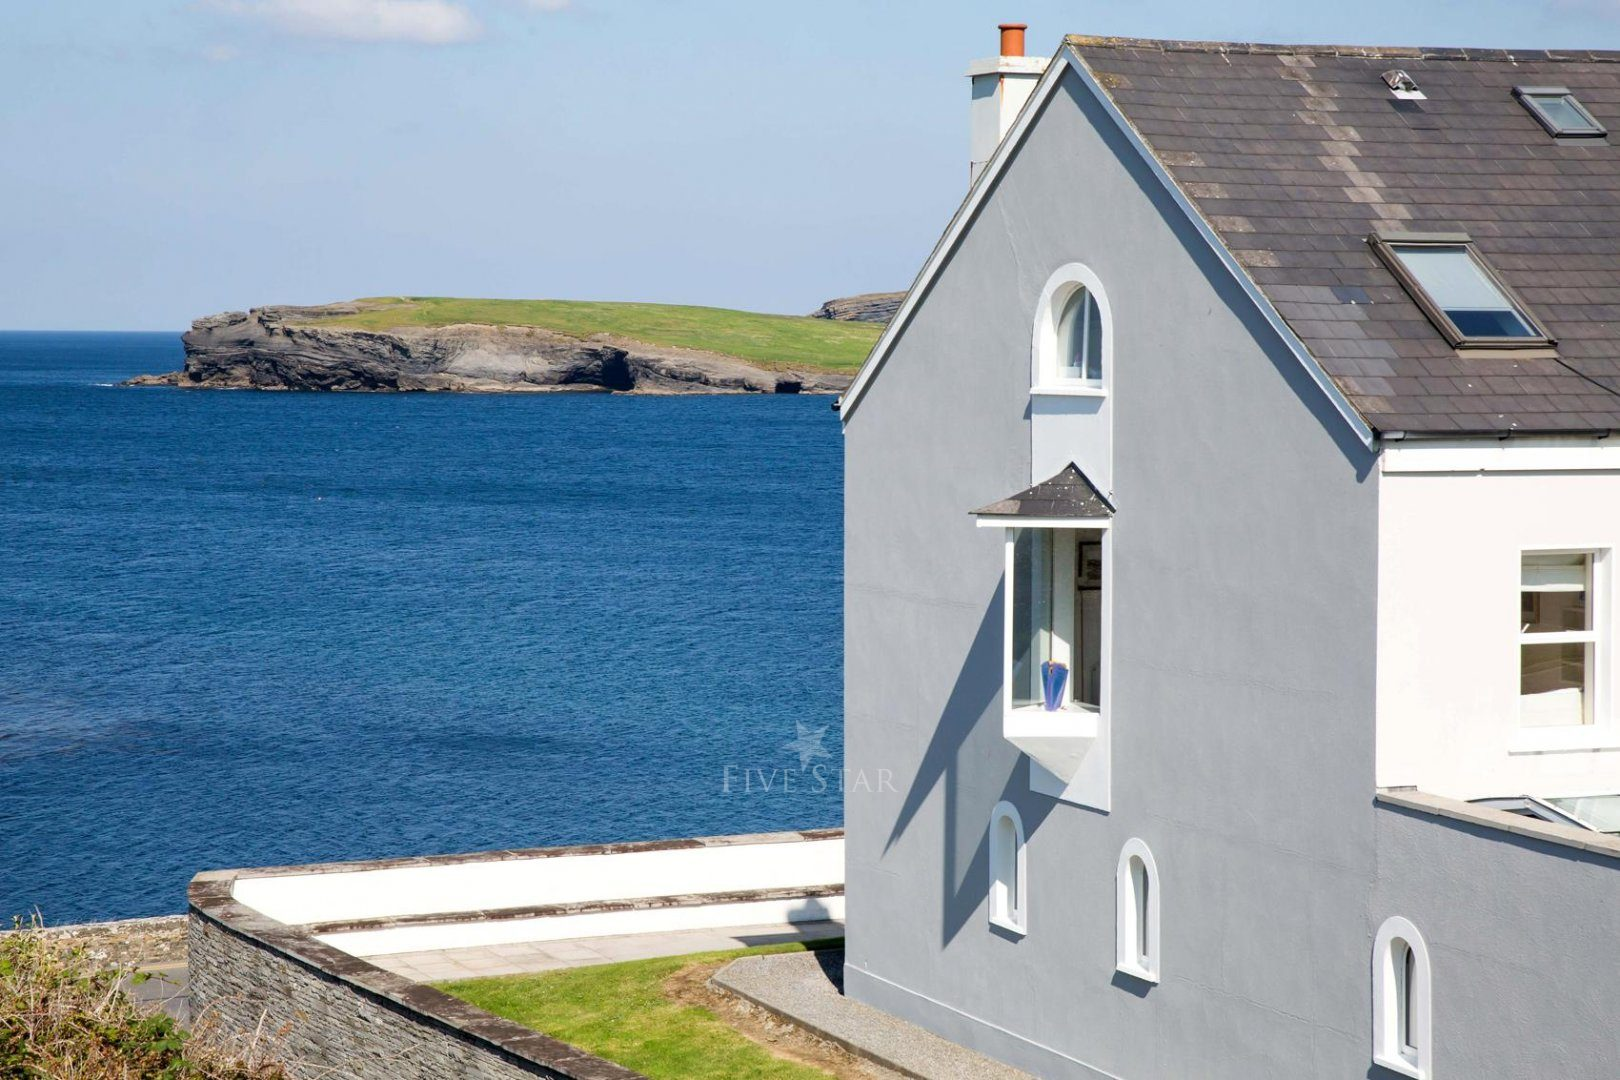 Diamond Rocks Kilkee photo 1